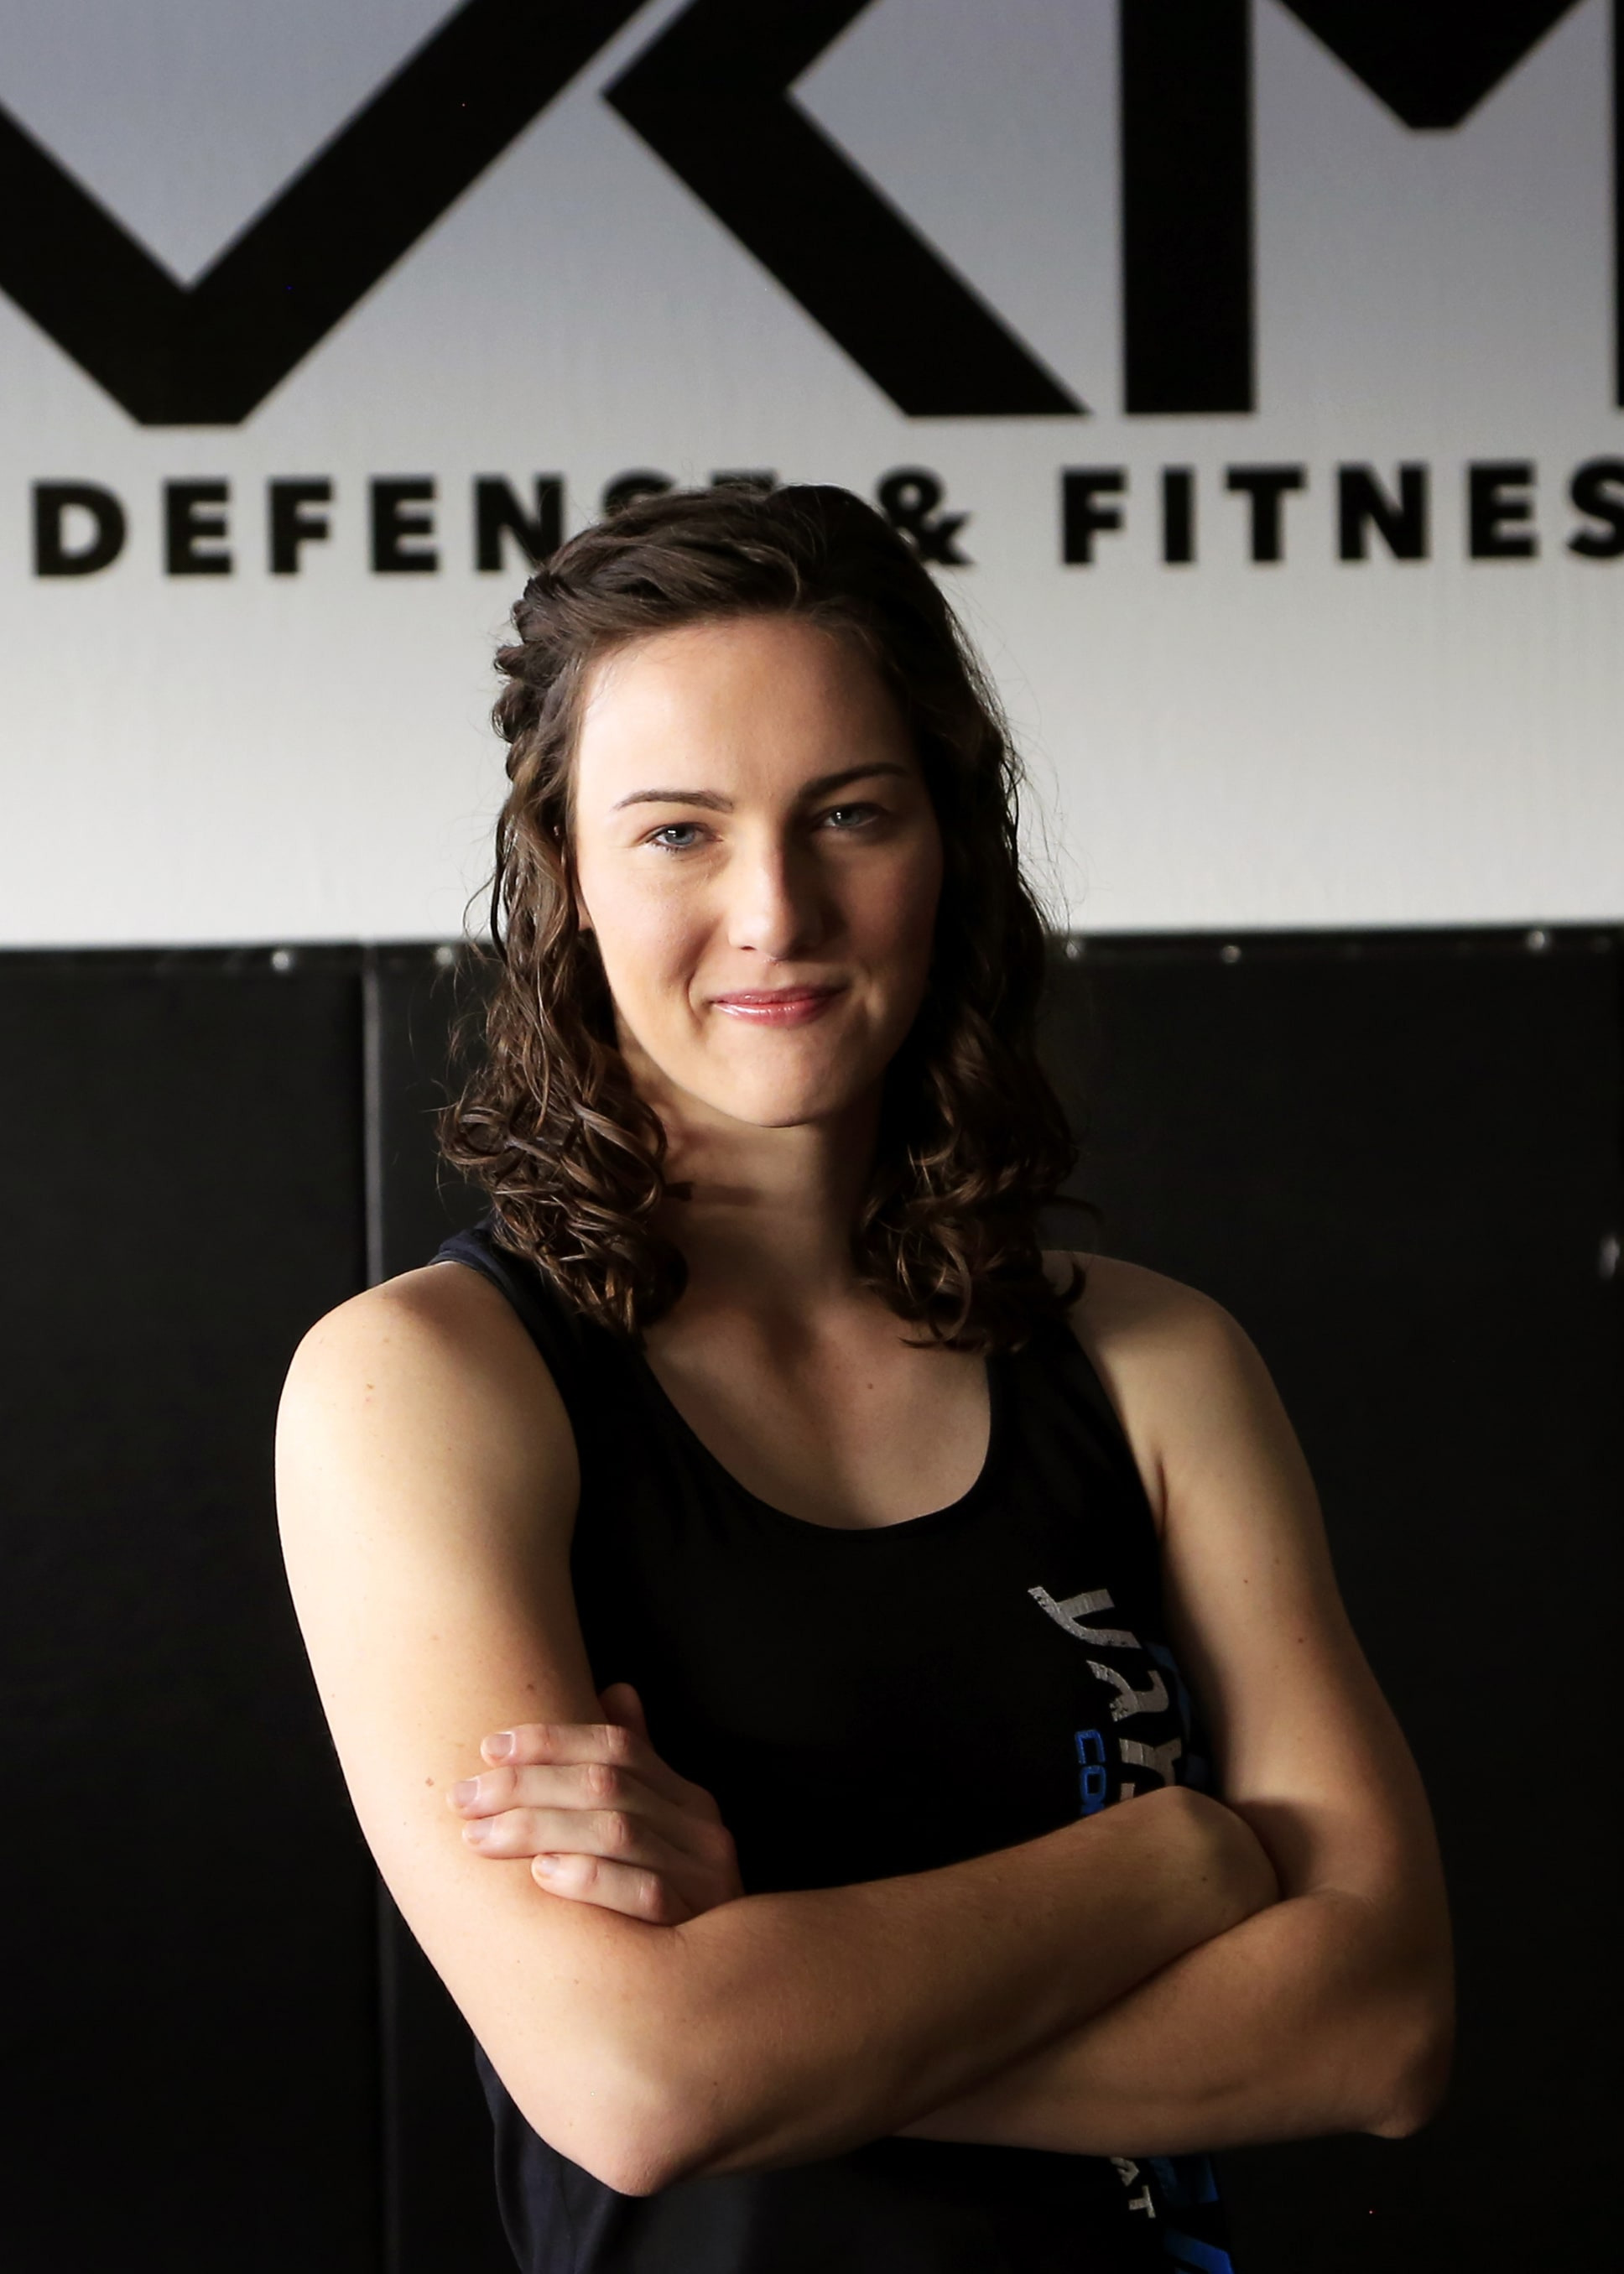 Janele Brinkman in Tempe - EVKM Self Defense & Fitness